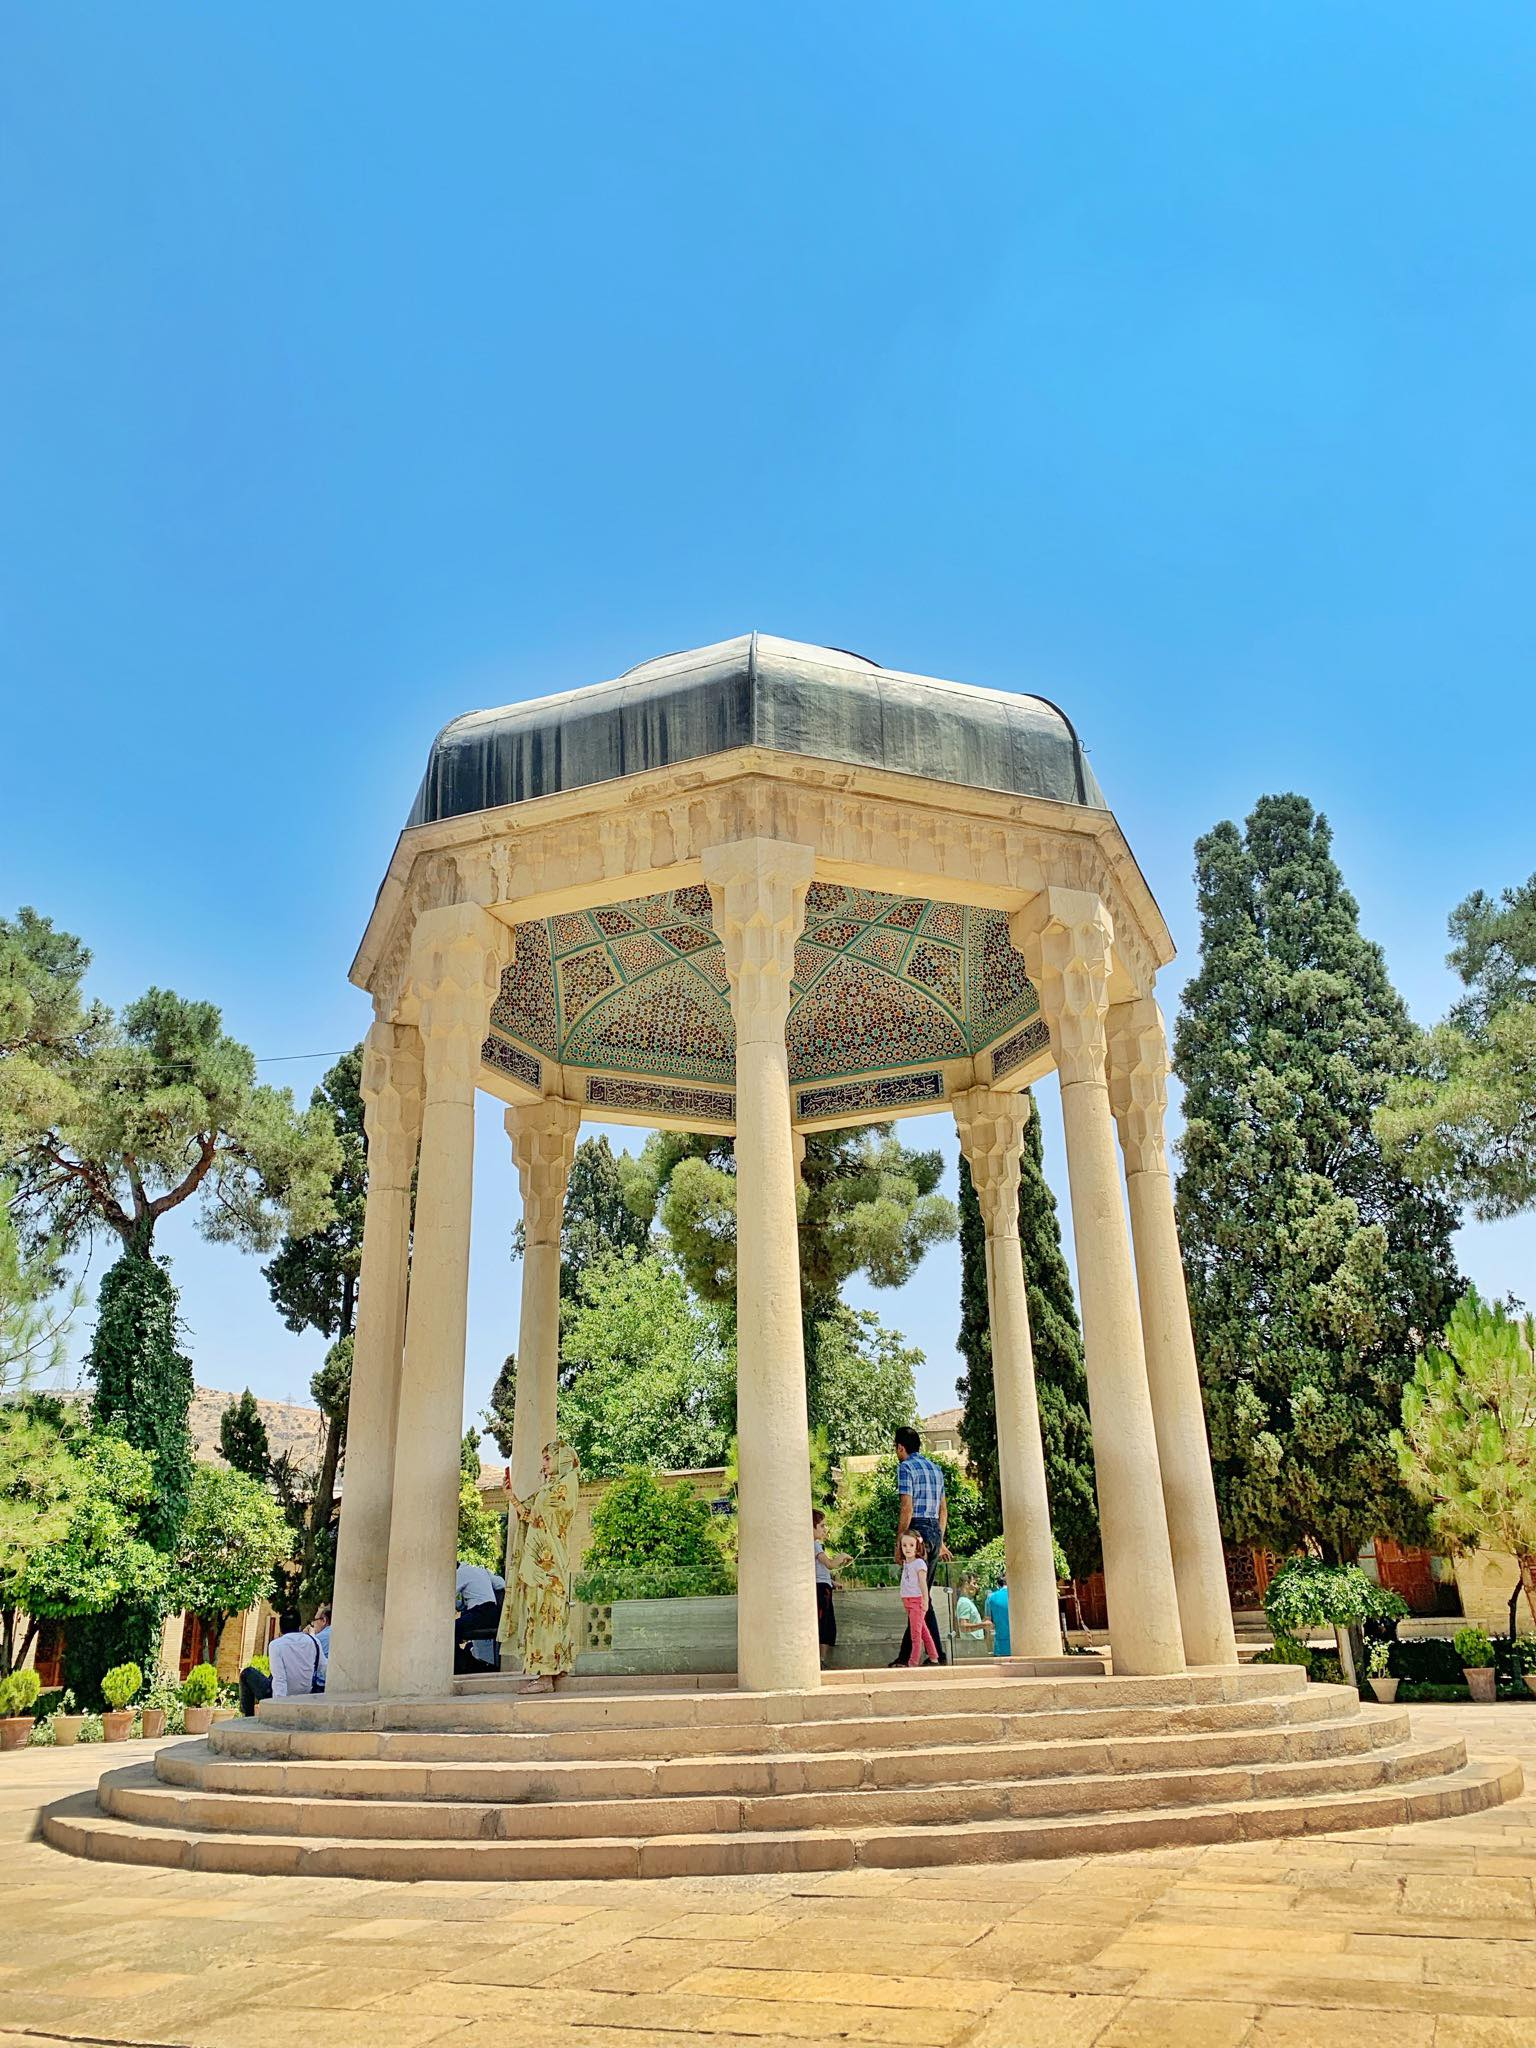 Kach Solo Travels in 2019 Full day tour of Shiraz8.jpg